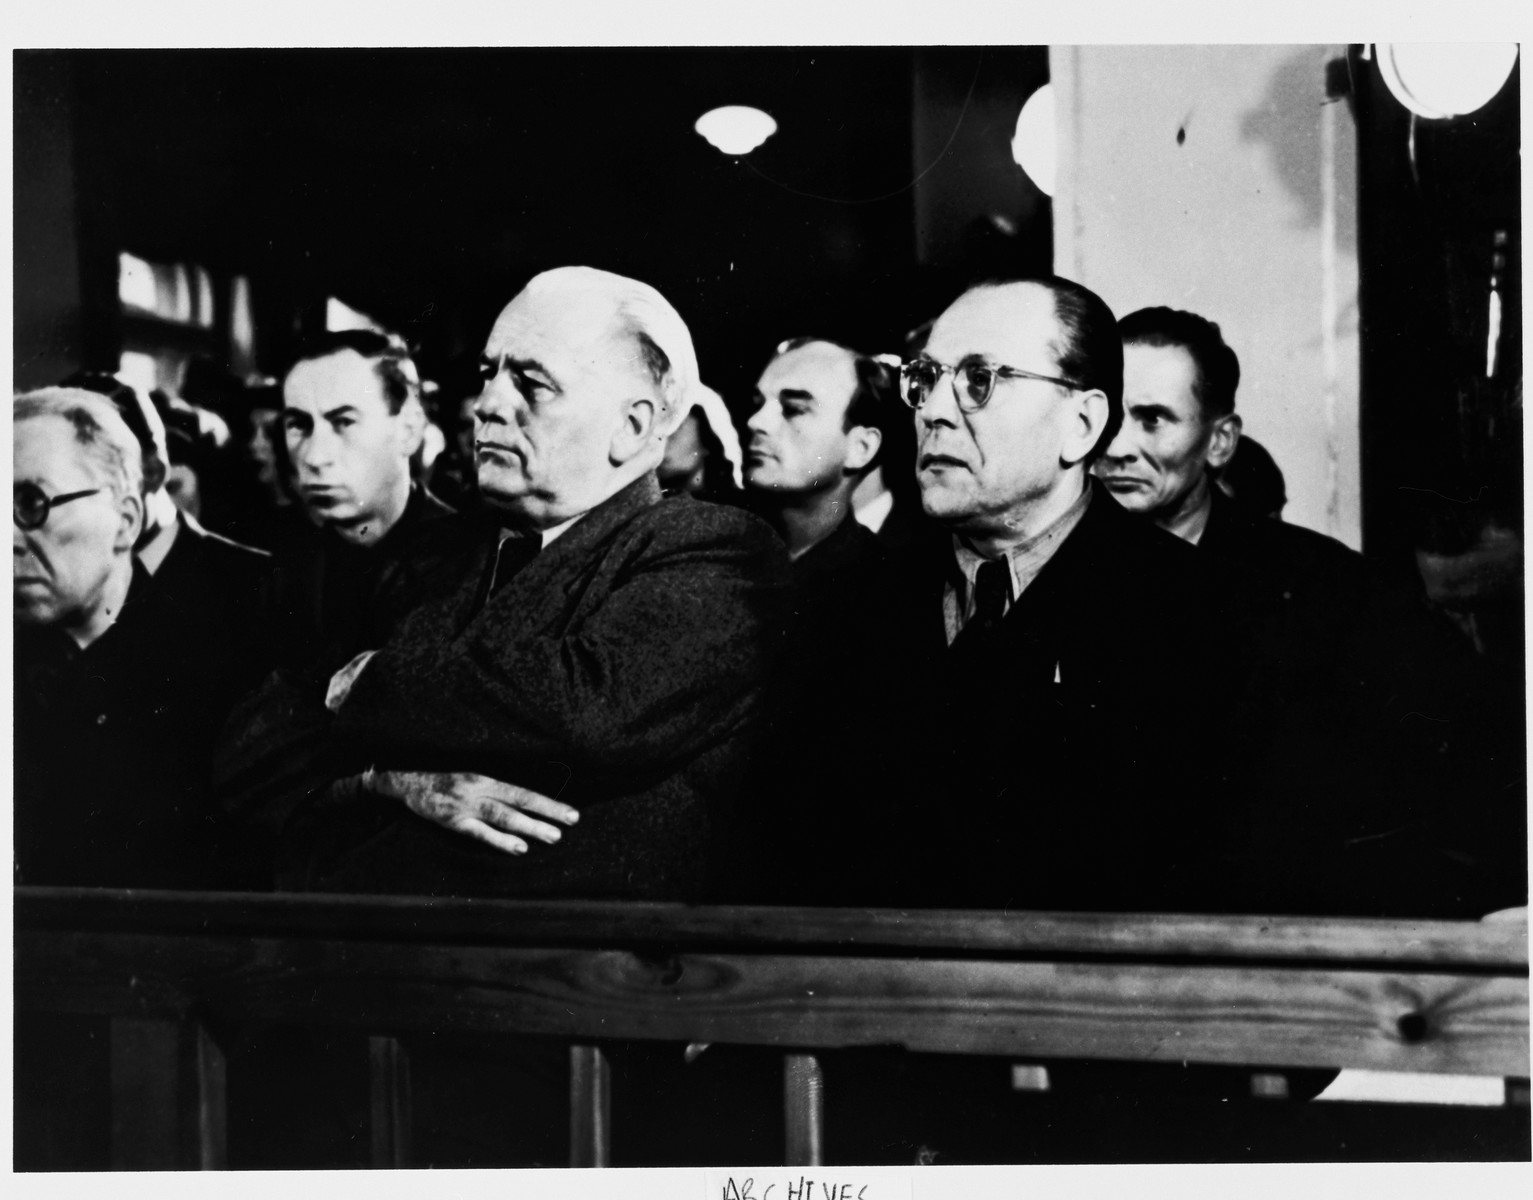 Spectators watch the proceedings at the Sachsenhausen concentration camp war crimes trial in Berlin.